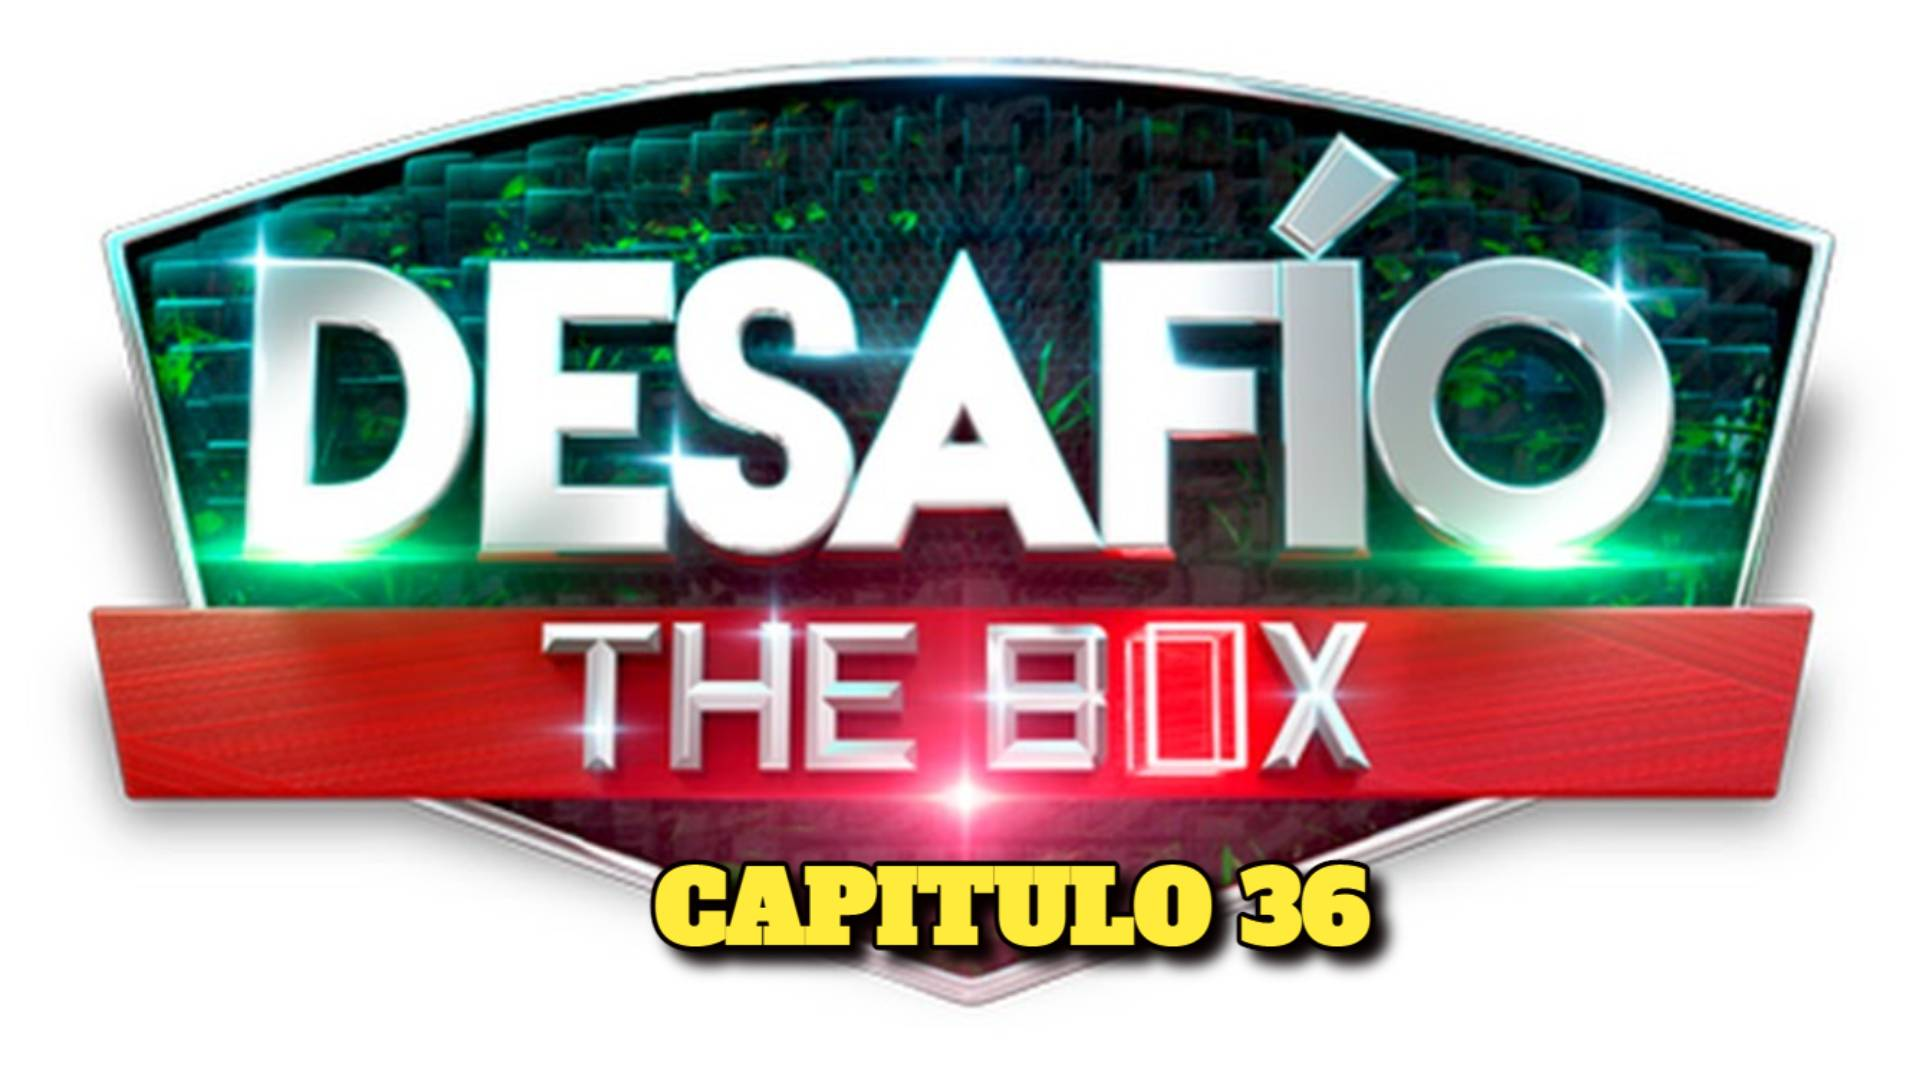 Desafio The Box 2021 CAPITULO 36